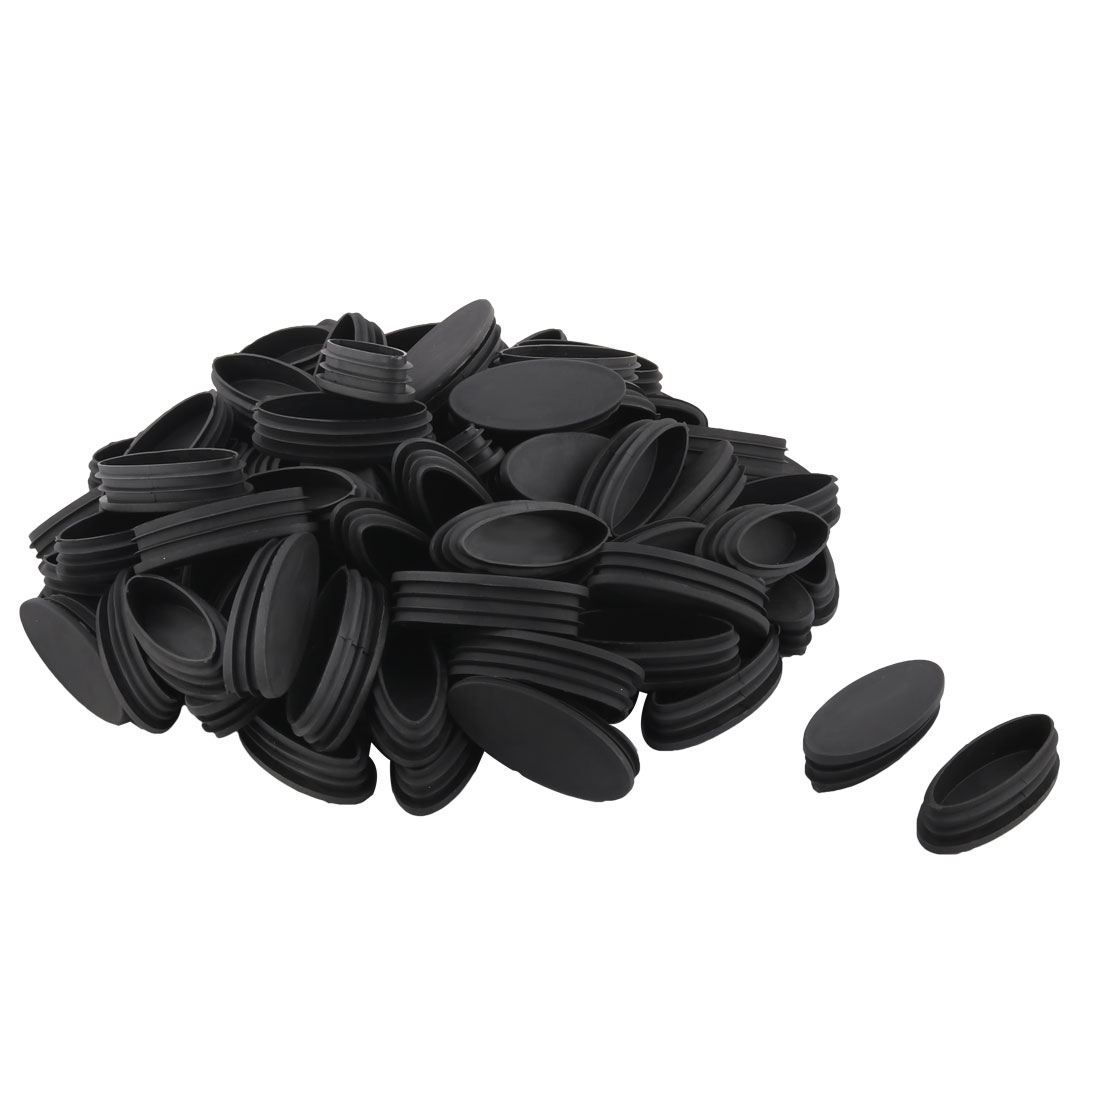 Plastic Oval Design Tube Insert End Blanking Cover Cap Black 80 x 35mm 50pcs